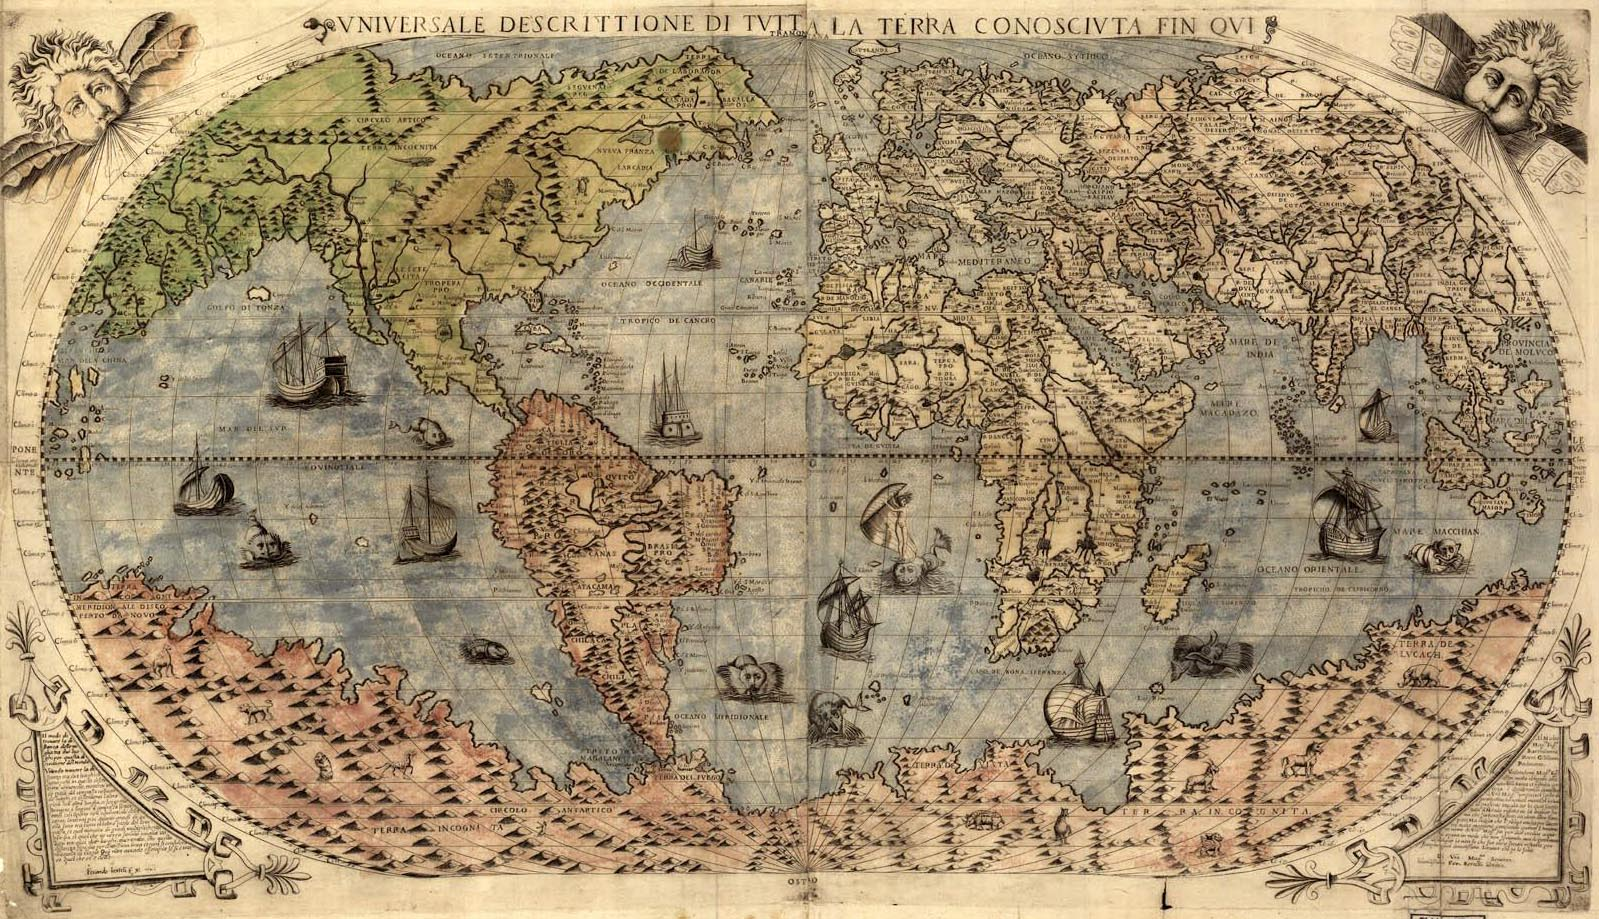 http://3.bp.blogspot.com/_HMnmAXT8bdc/TNIIZbnZTVI/AAAAAAAAD_c/xX2ByHJ_2GY/s1600/old-world-map.jpg